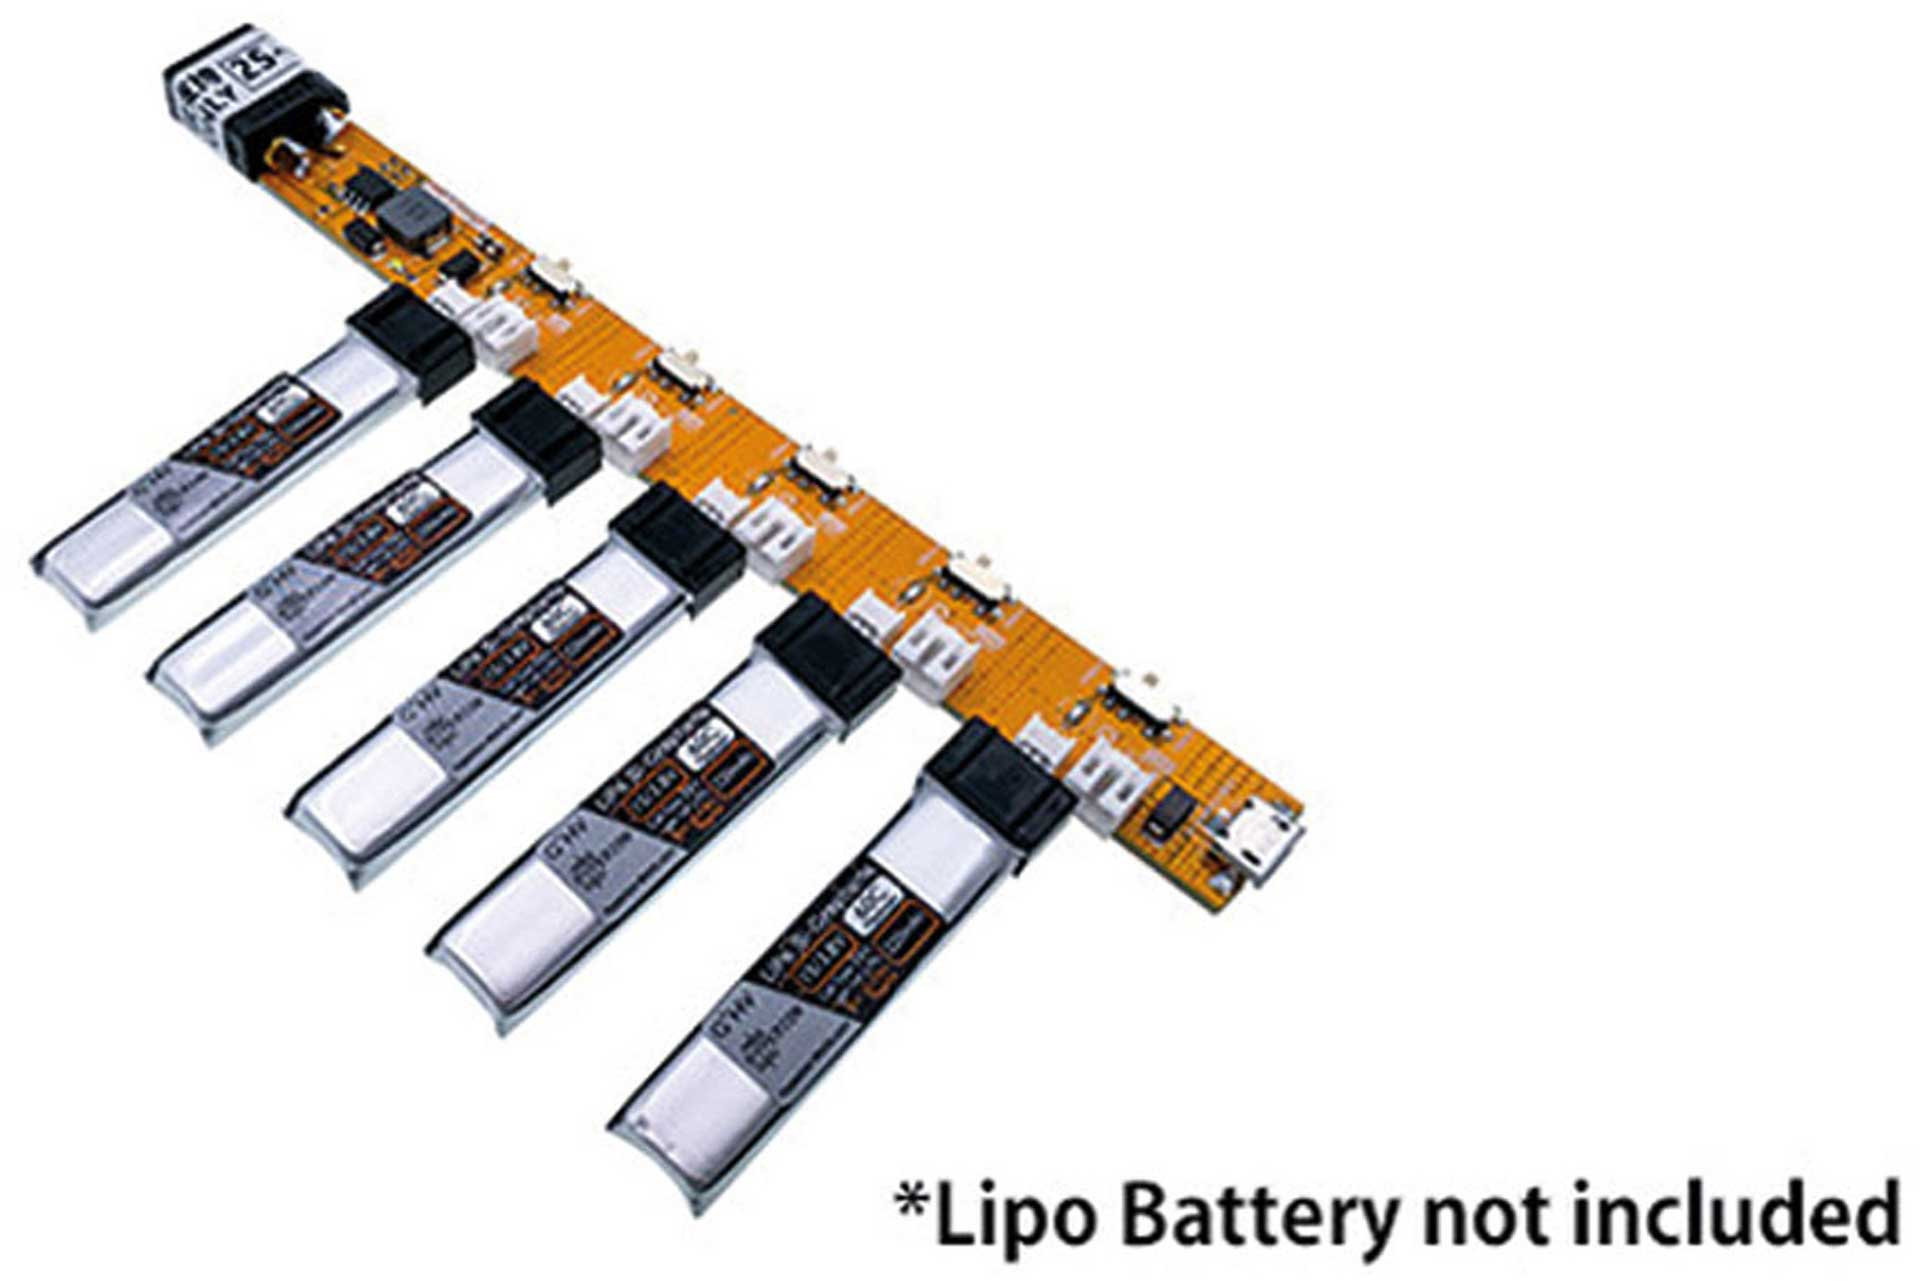 HYPERION ADAPTER BOARD 5X 1S LIPOS WITH UMX OR JST CONNECTION OF USB OR XT60